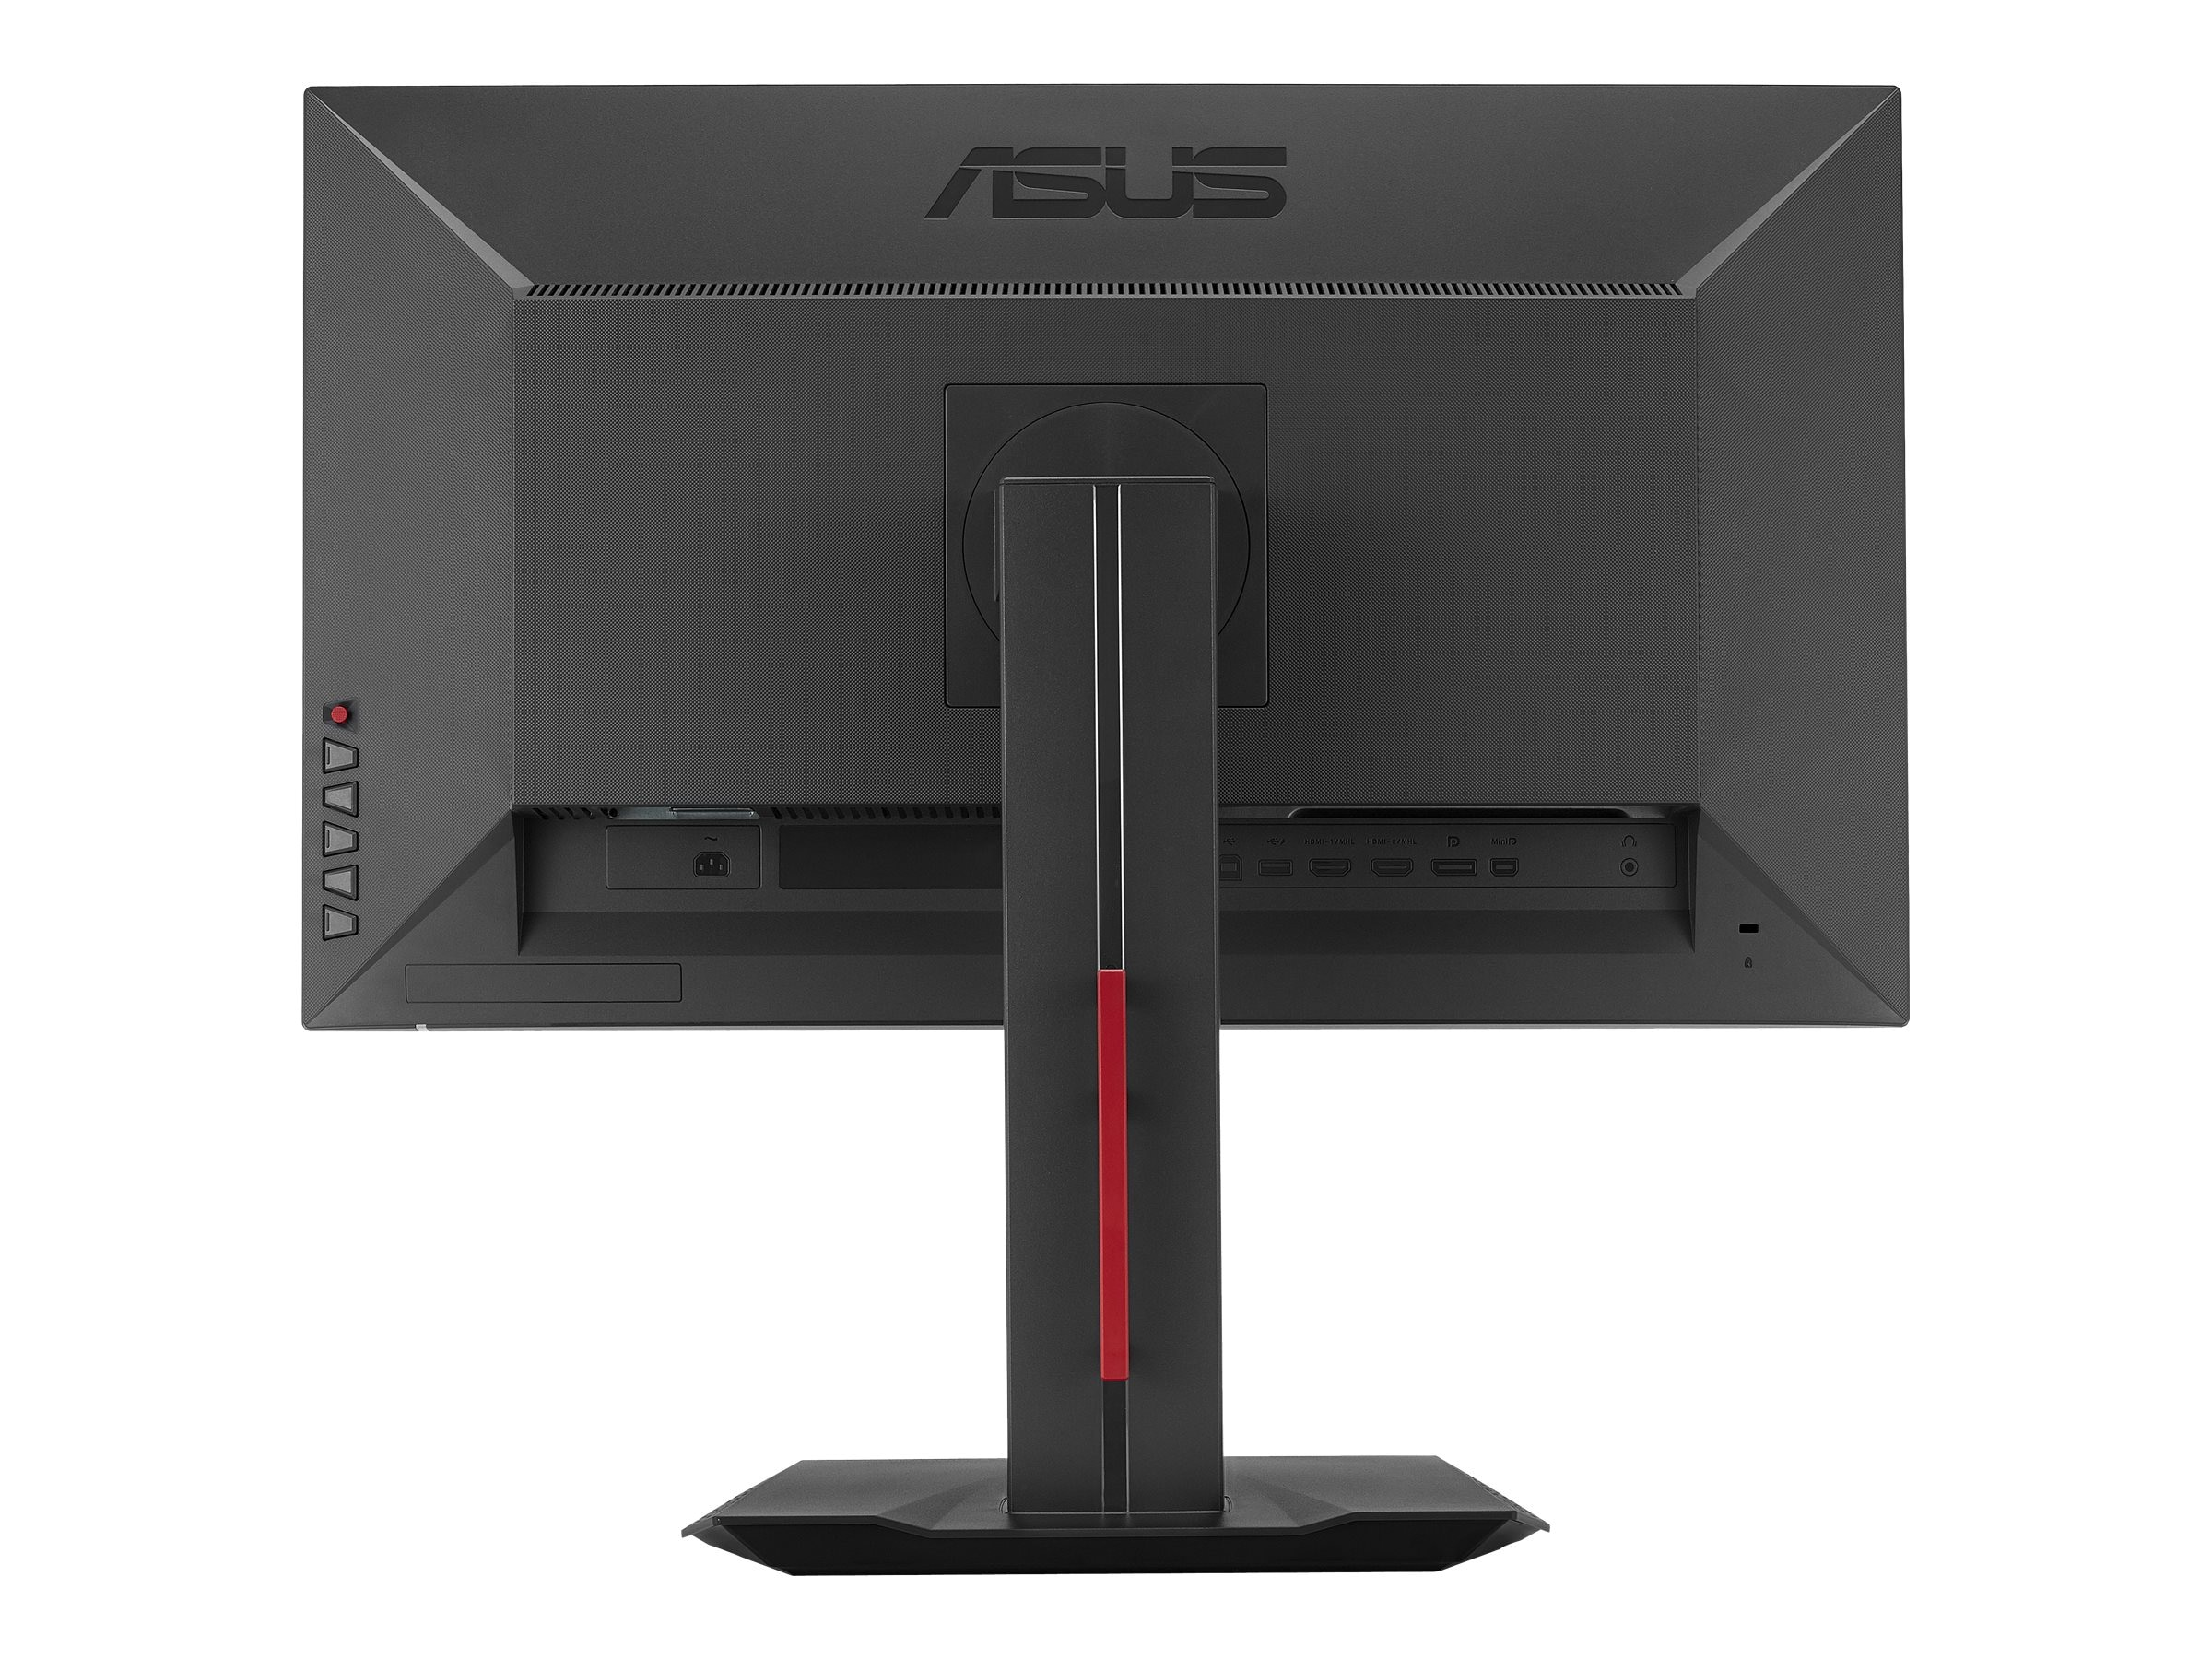 Asus 27 MG279Q WQHD LED-LCD Monitor, Black, MG279Q